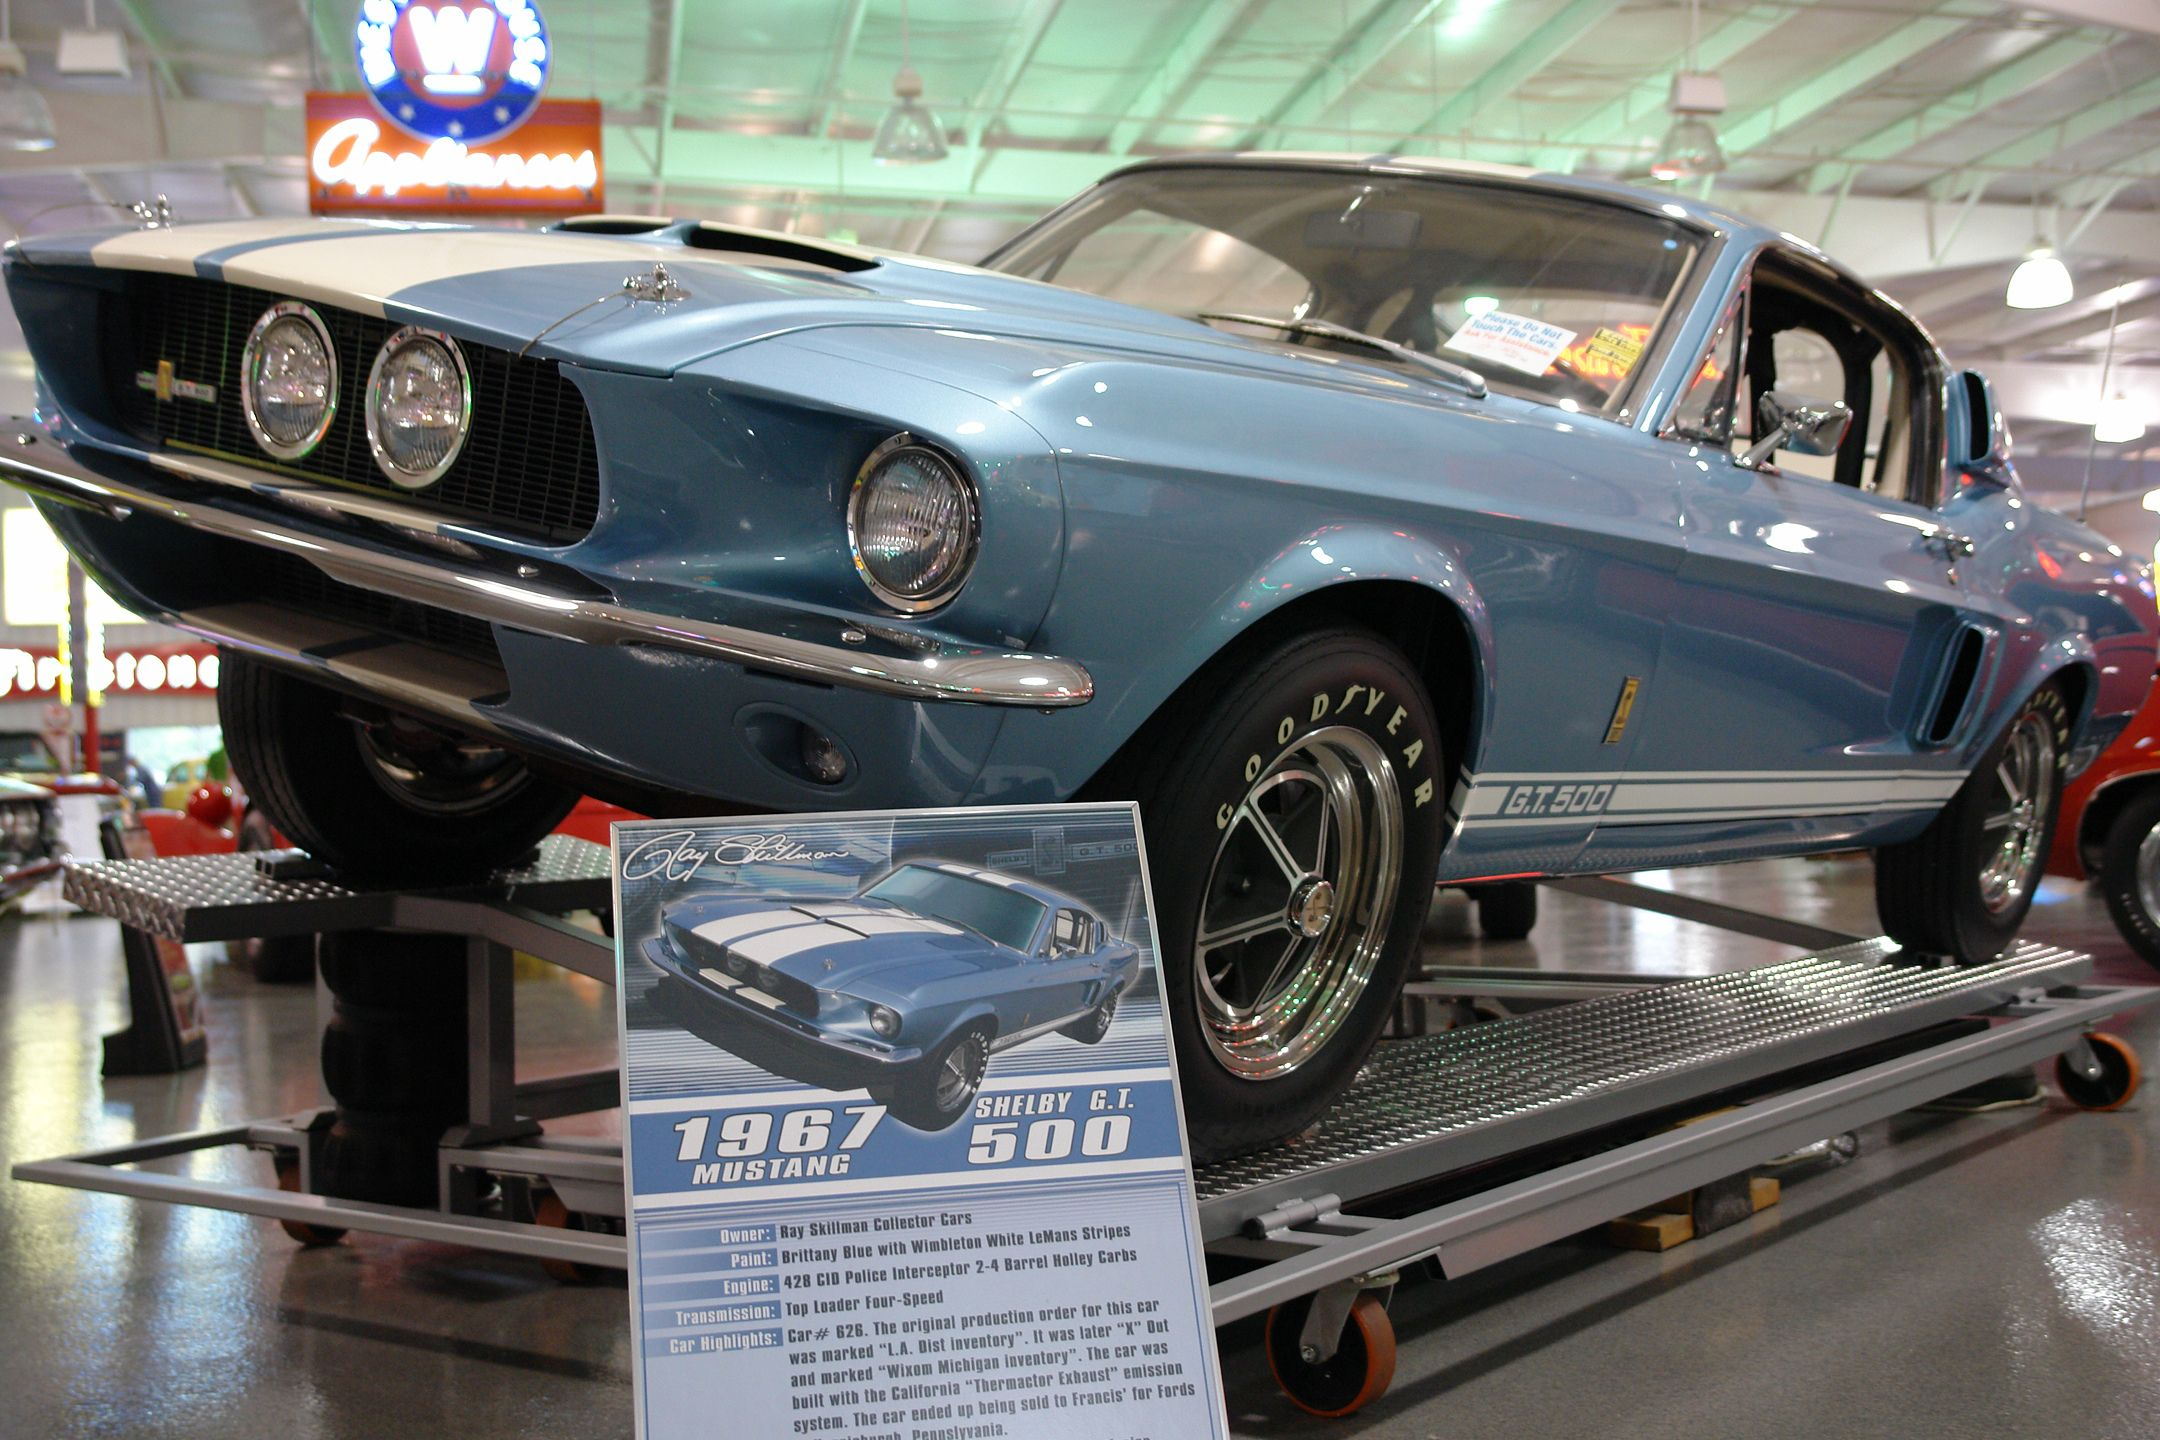 1967 Mustang Maintenance Restoration Of Old Vintage Vehicles The